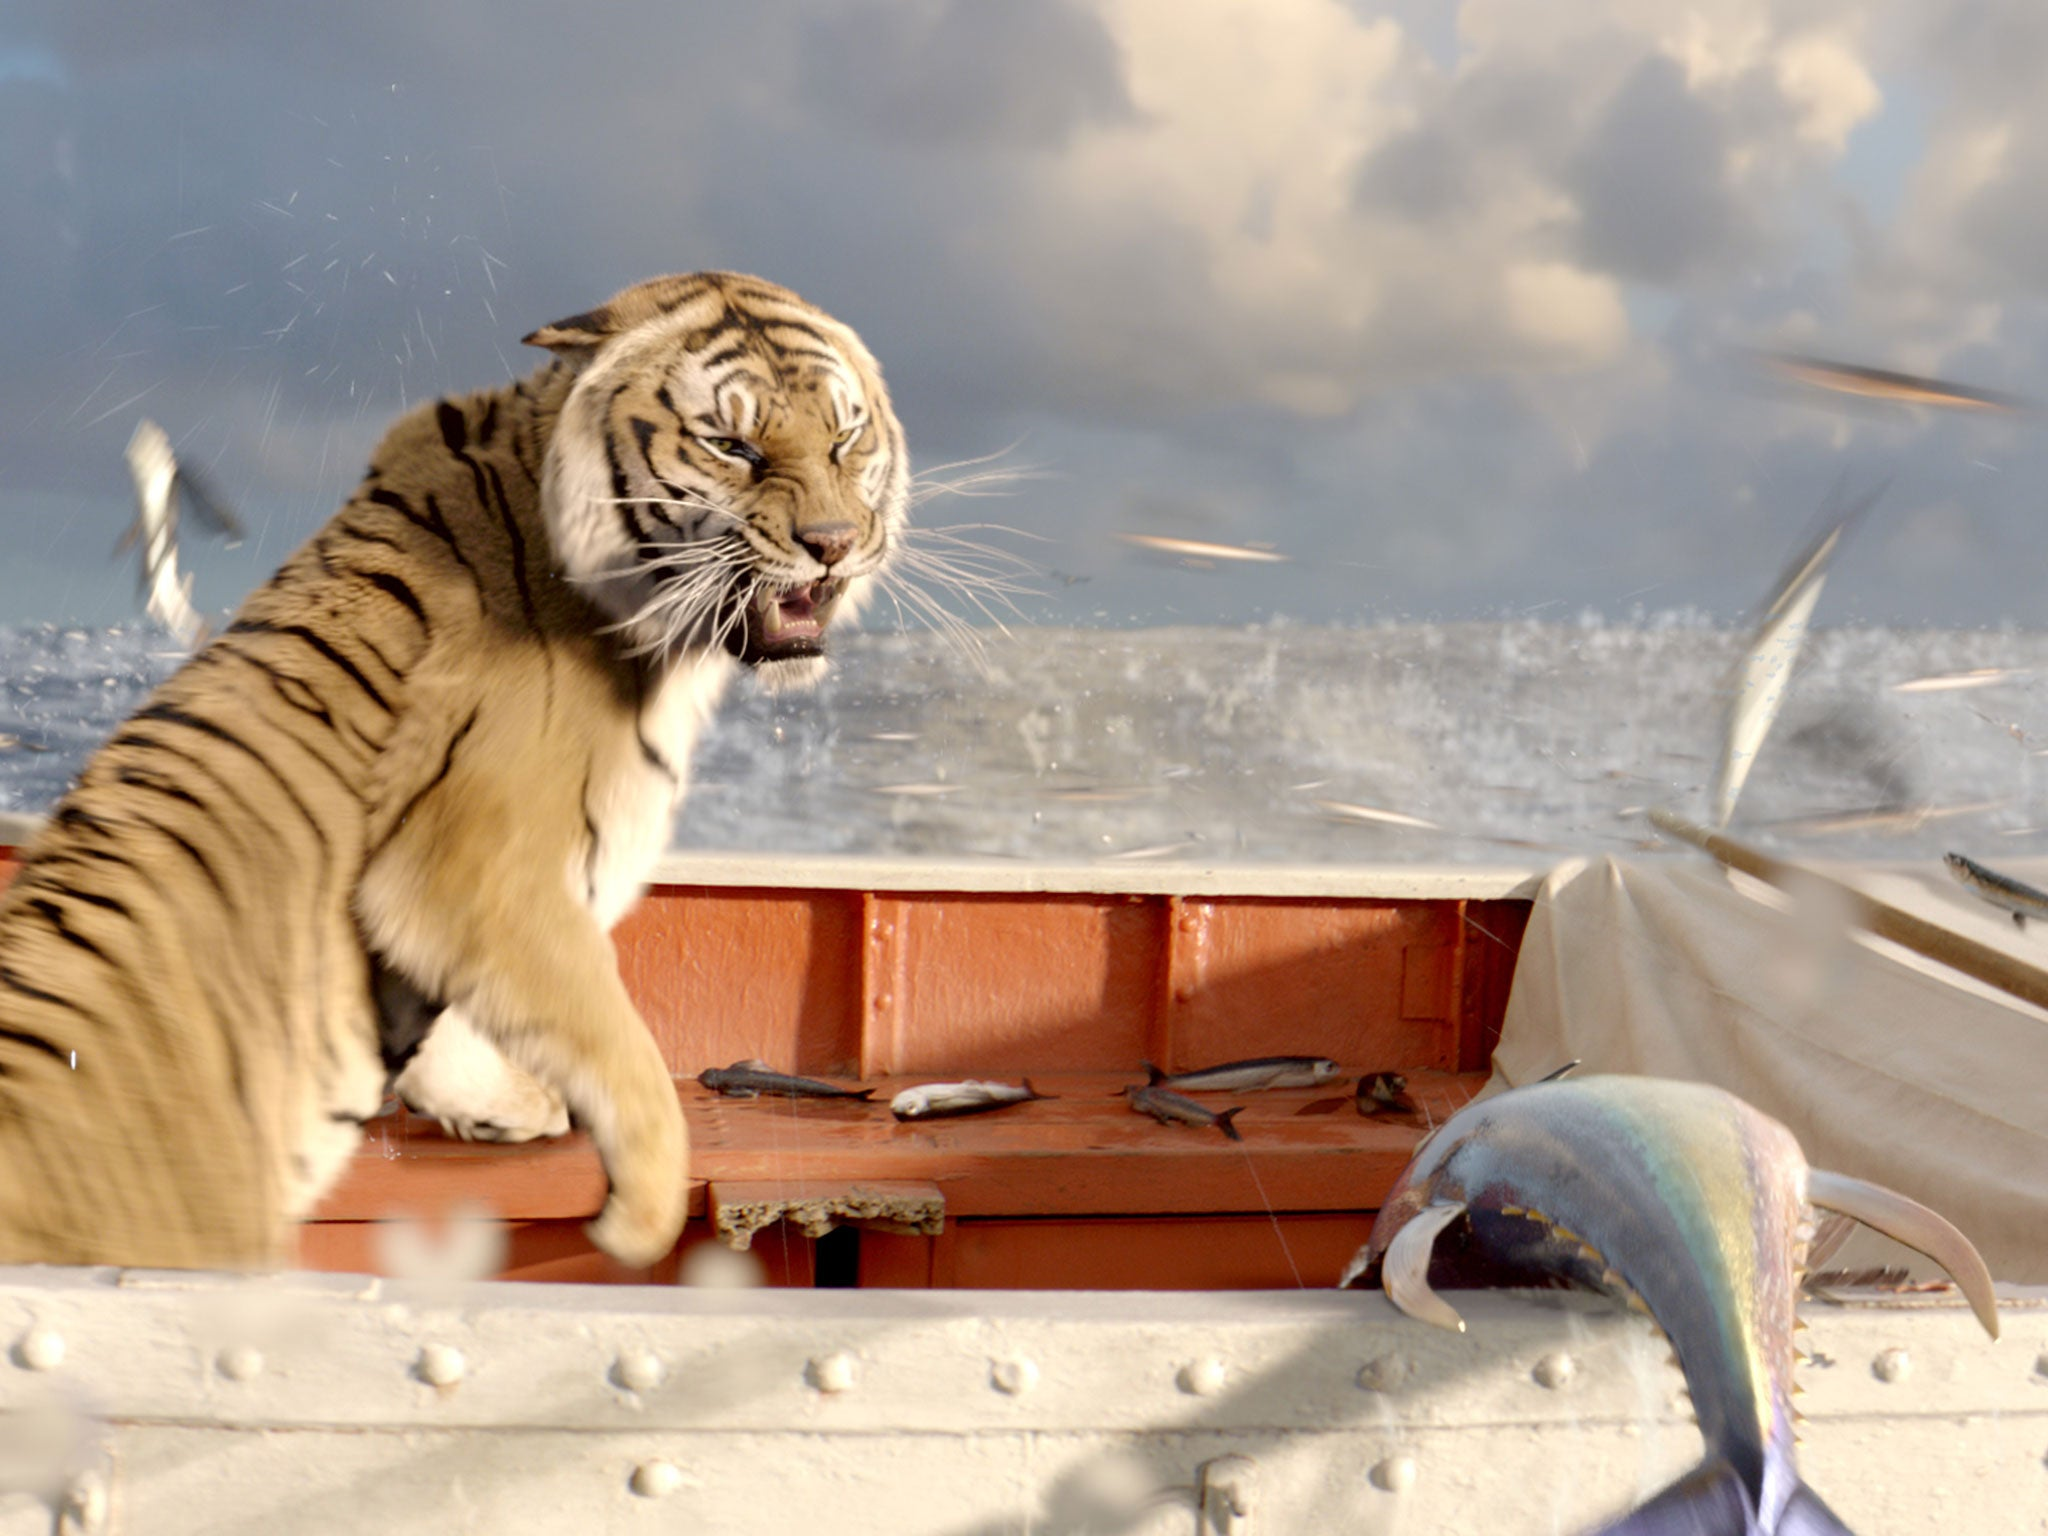 When the tigers broke free single dating